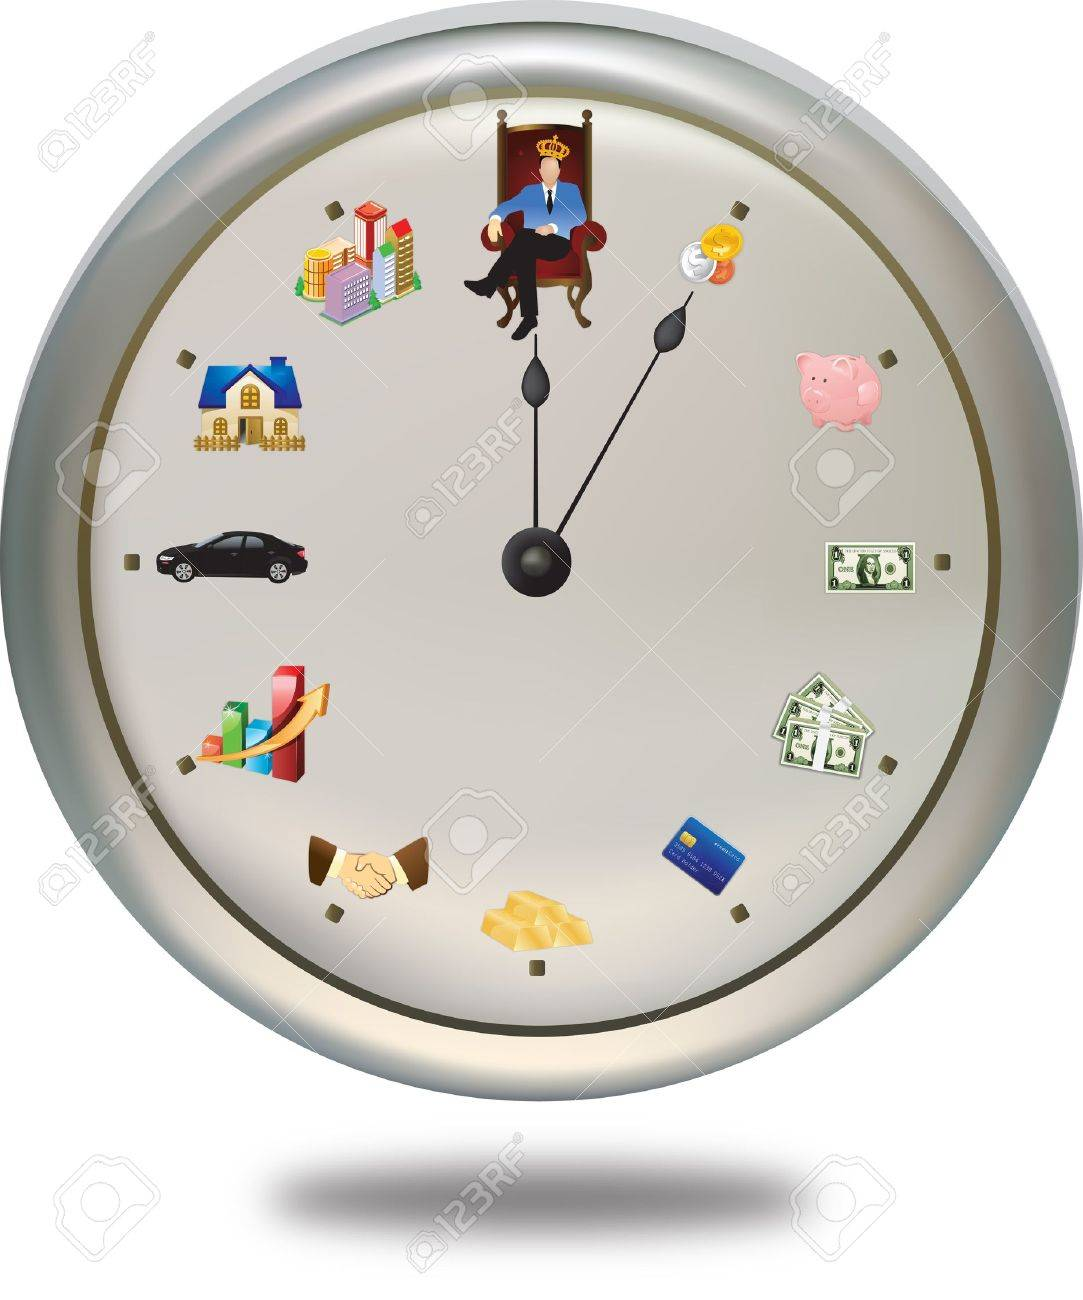 Time is money ***This special clock shows how a person can achieve their financial-goal in 12 periods of life-time. The short-hand is the FINAL goal, while the long-hand shows their current status. So the hand will be distinct for each person Stock Vector - 12163001